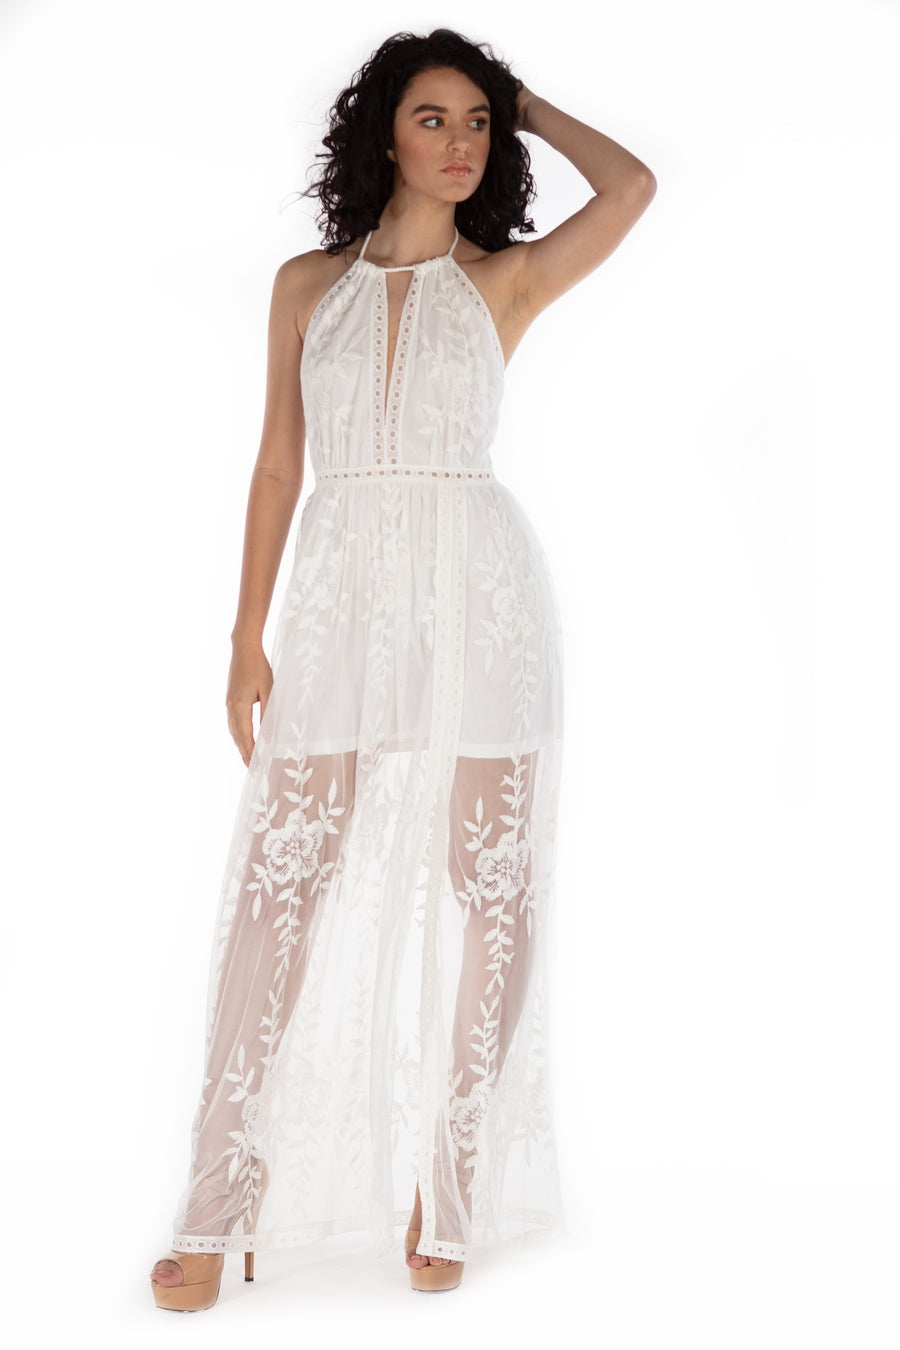 Serenity Long Lace Skirt Dress - White